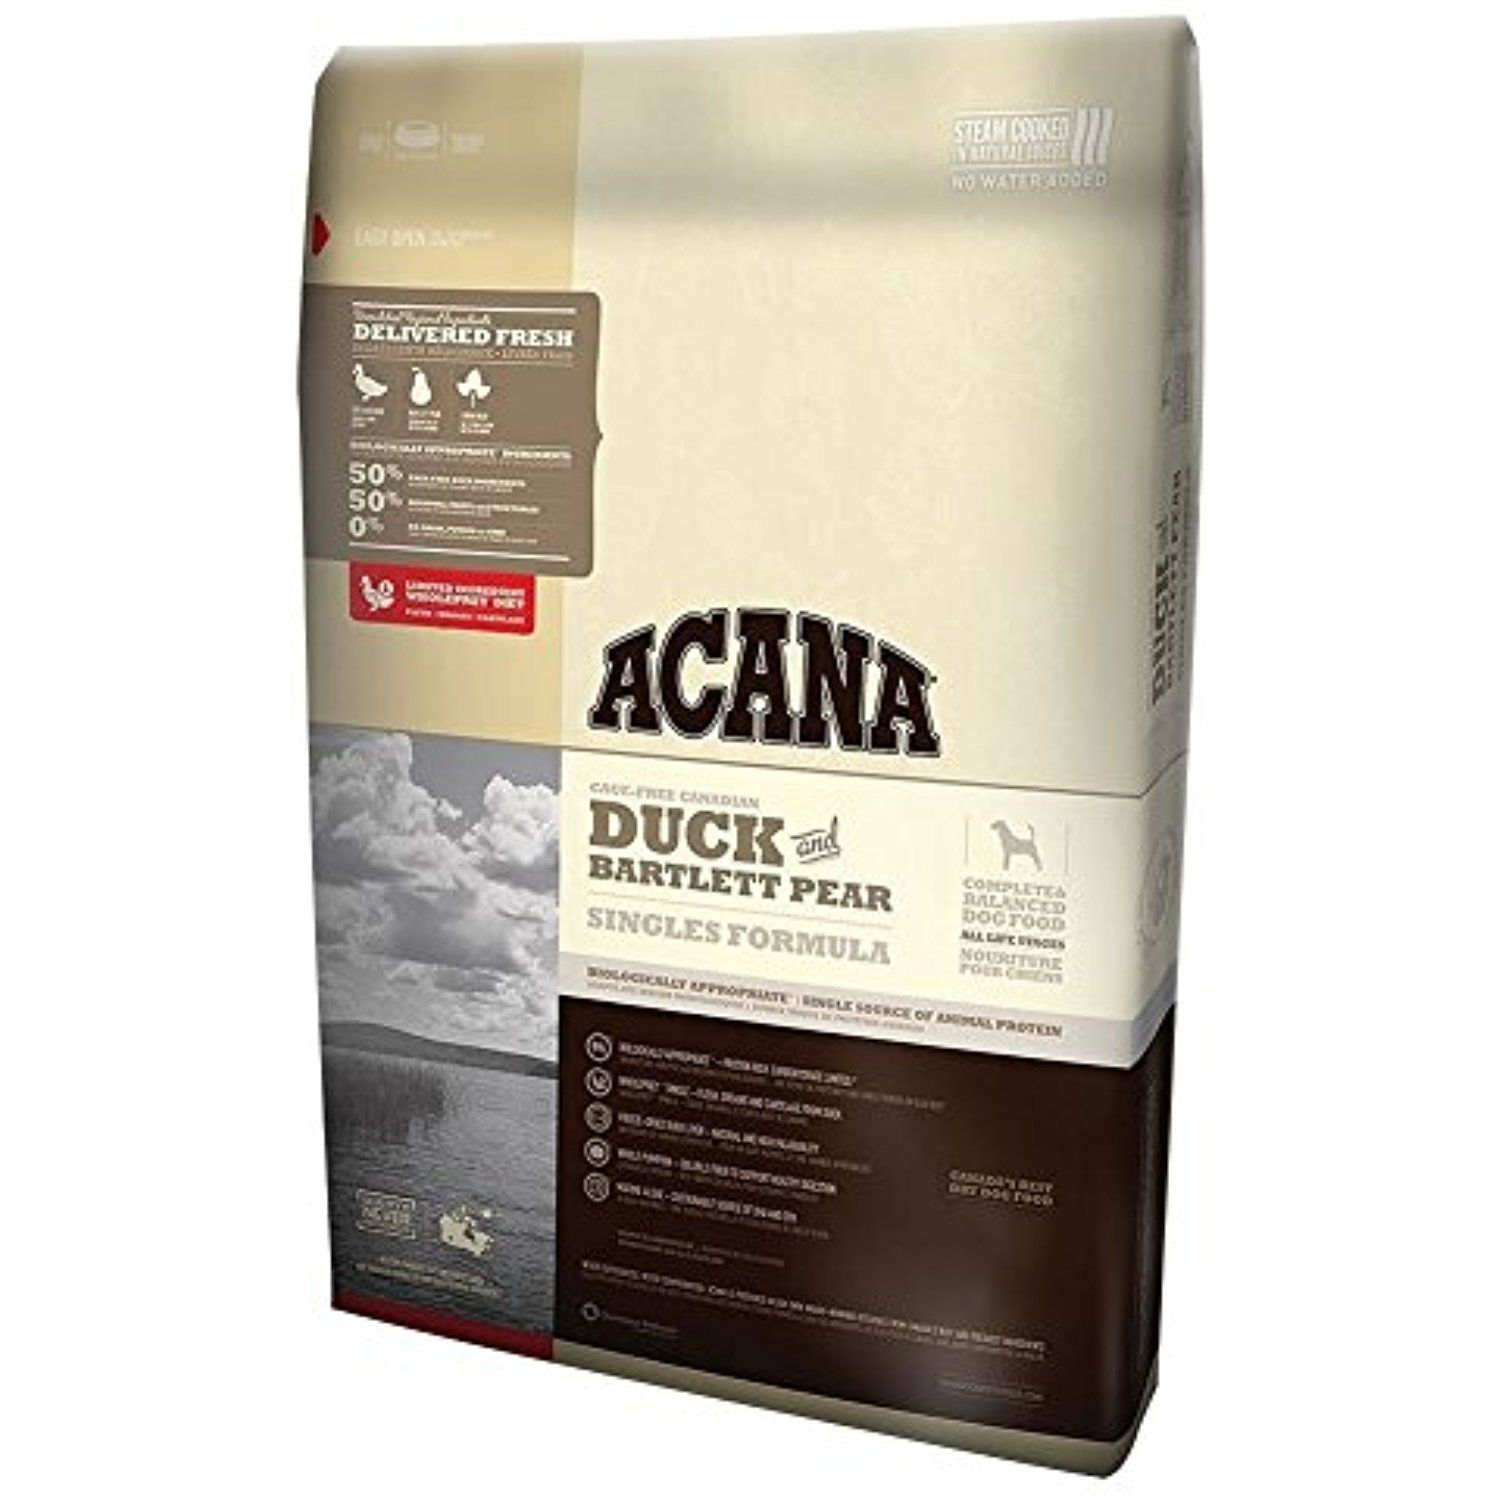 Acana Duck & Bartlett Pear Dry Dog Food 4.4lb You can